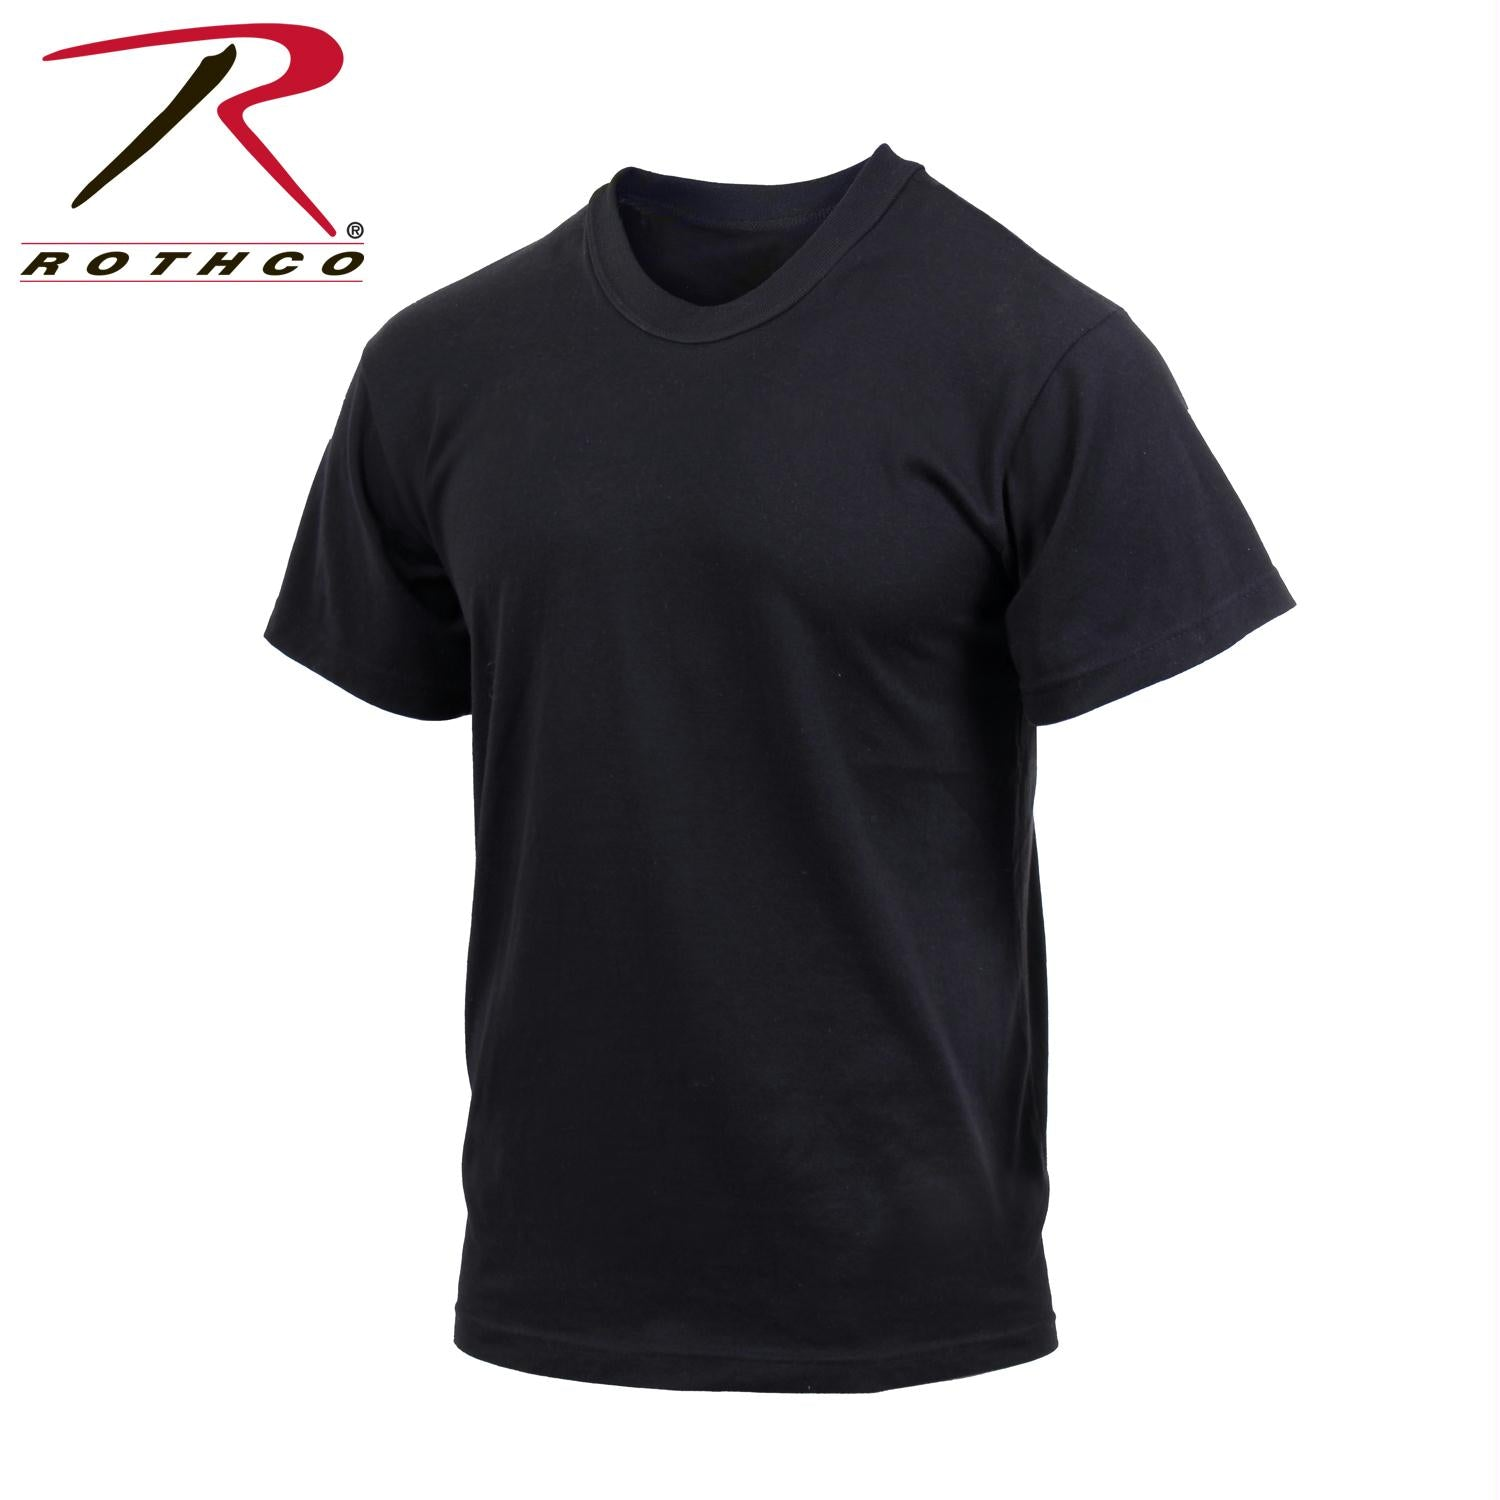 Rothco Moisture Wicking T-Shirts - Black / S